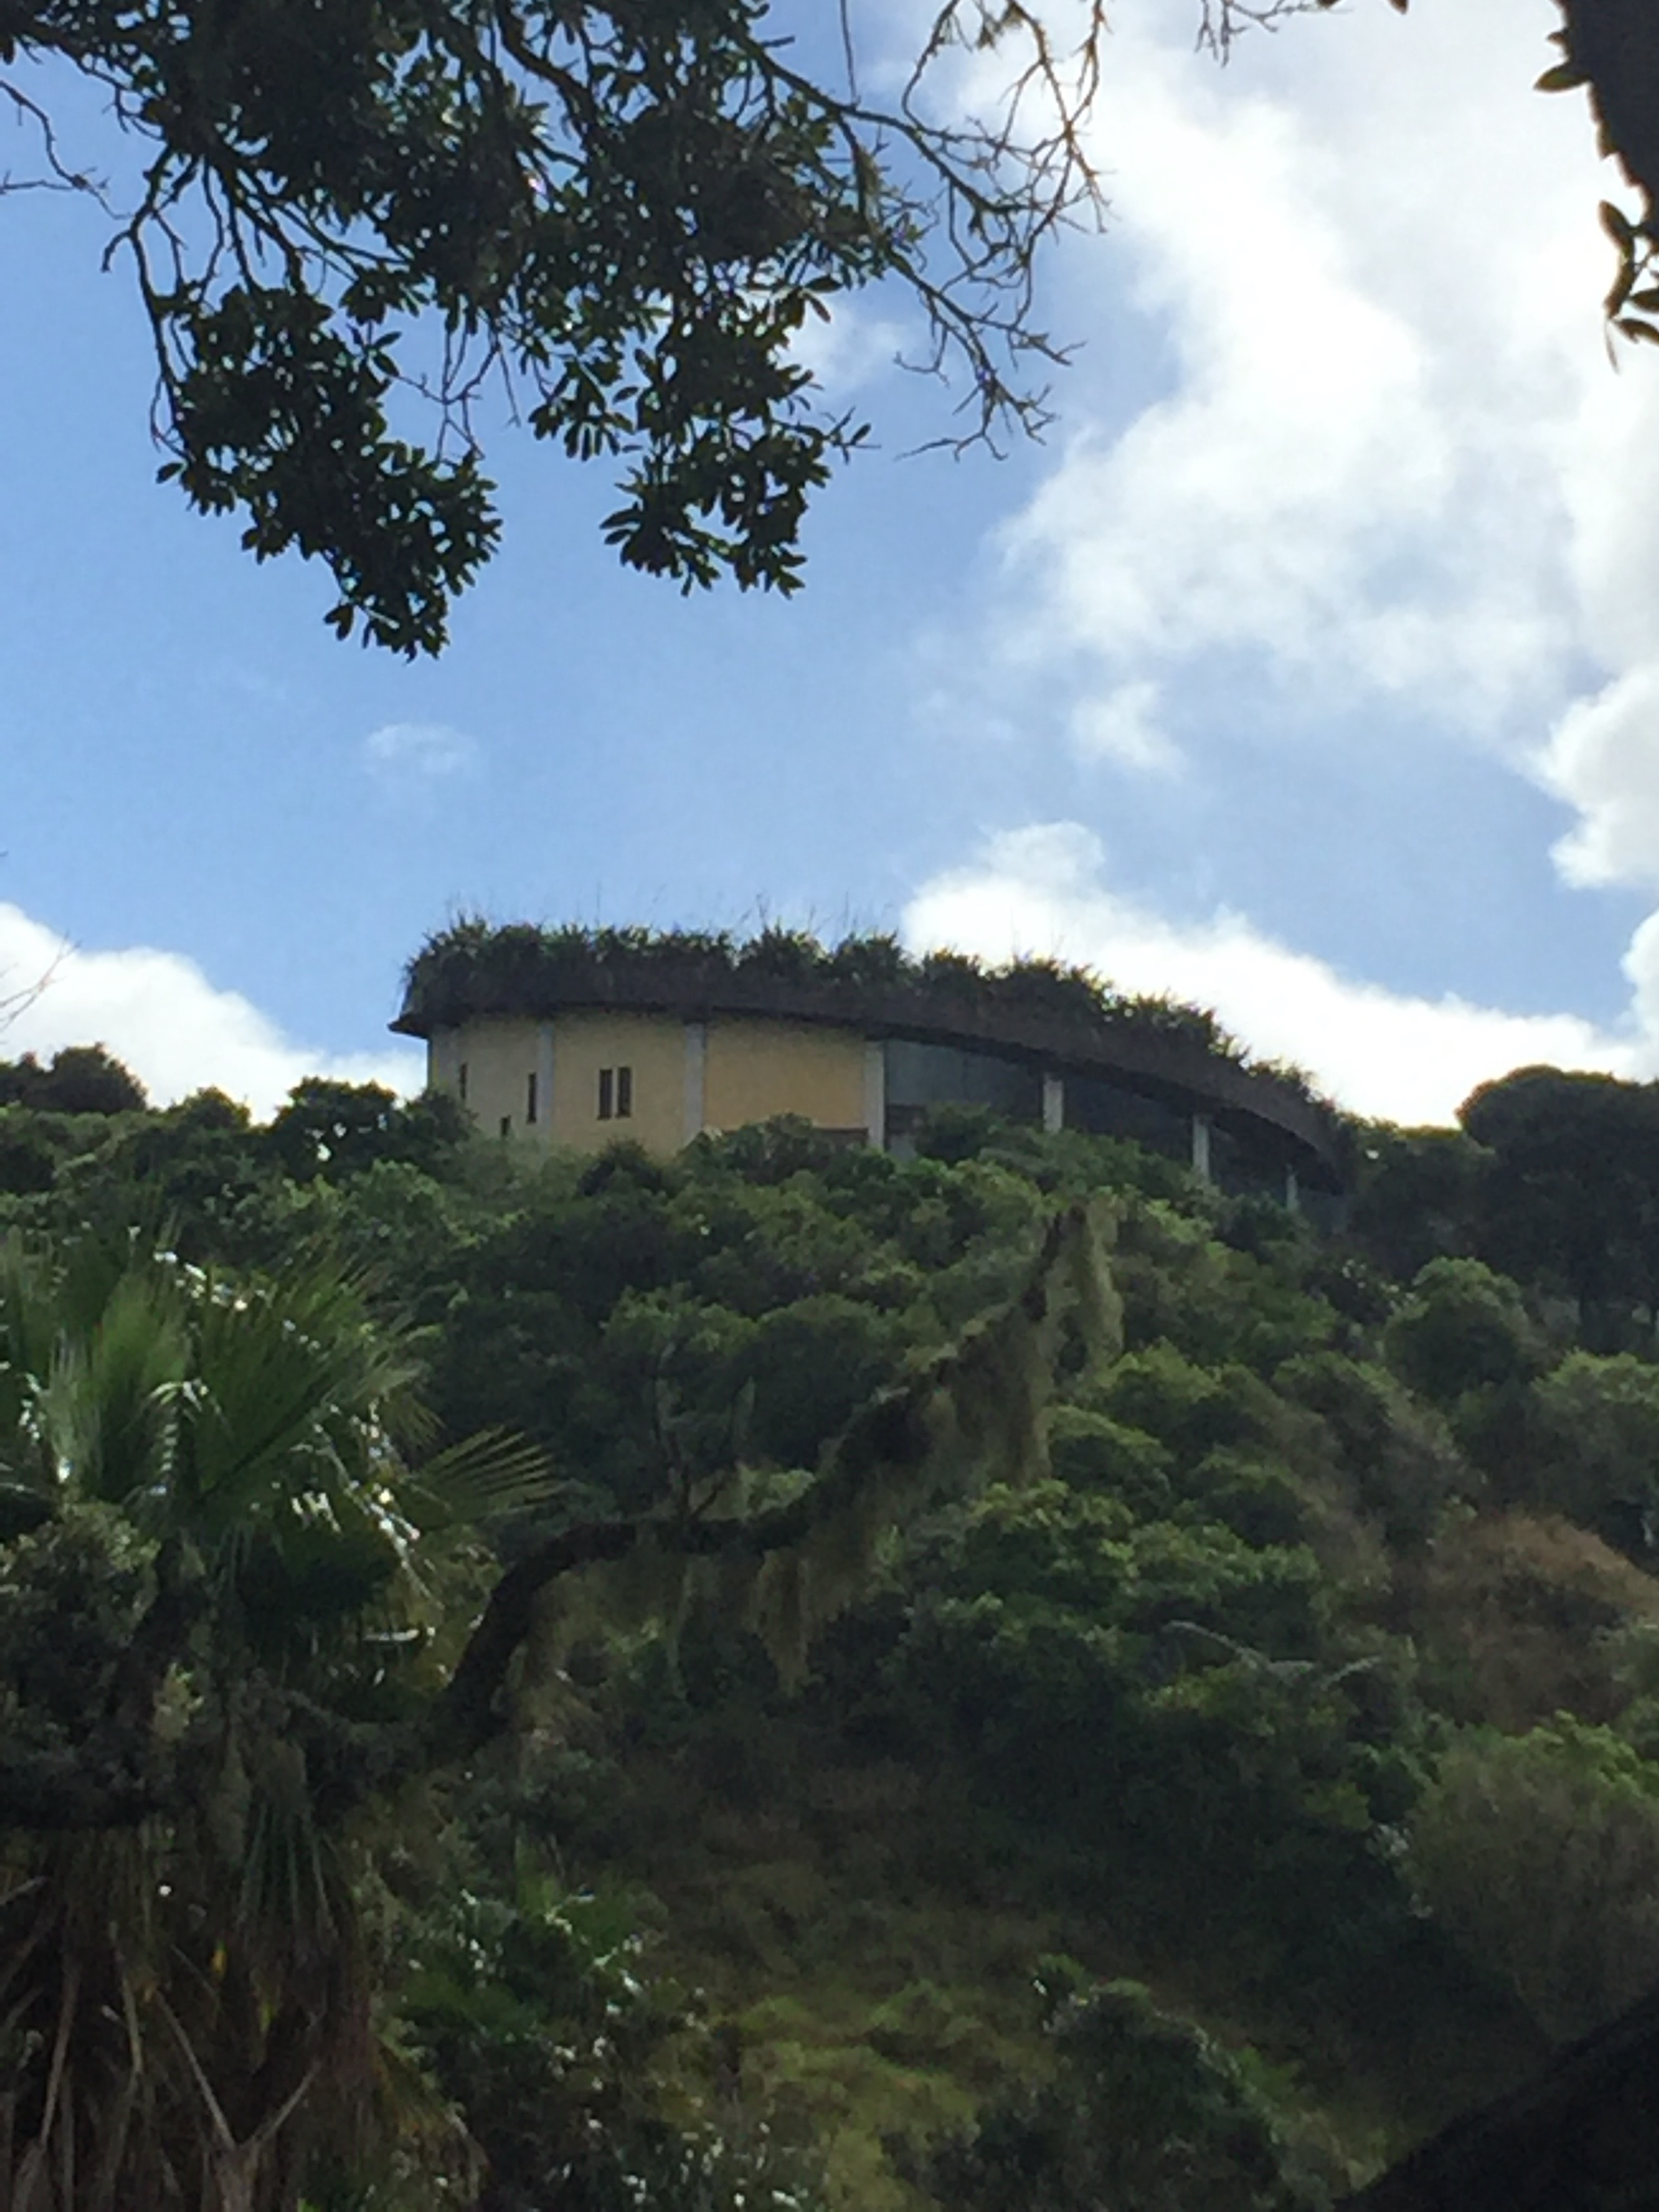 Green roof hides building on the hill